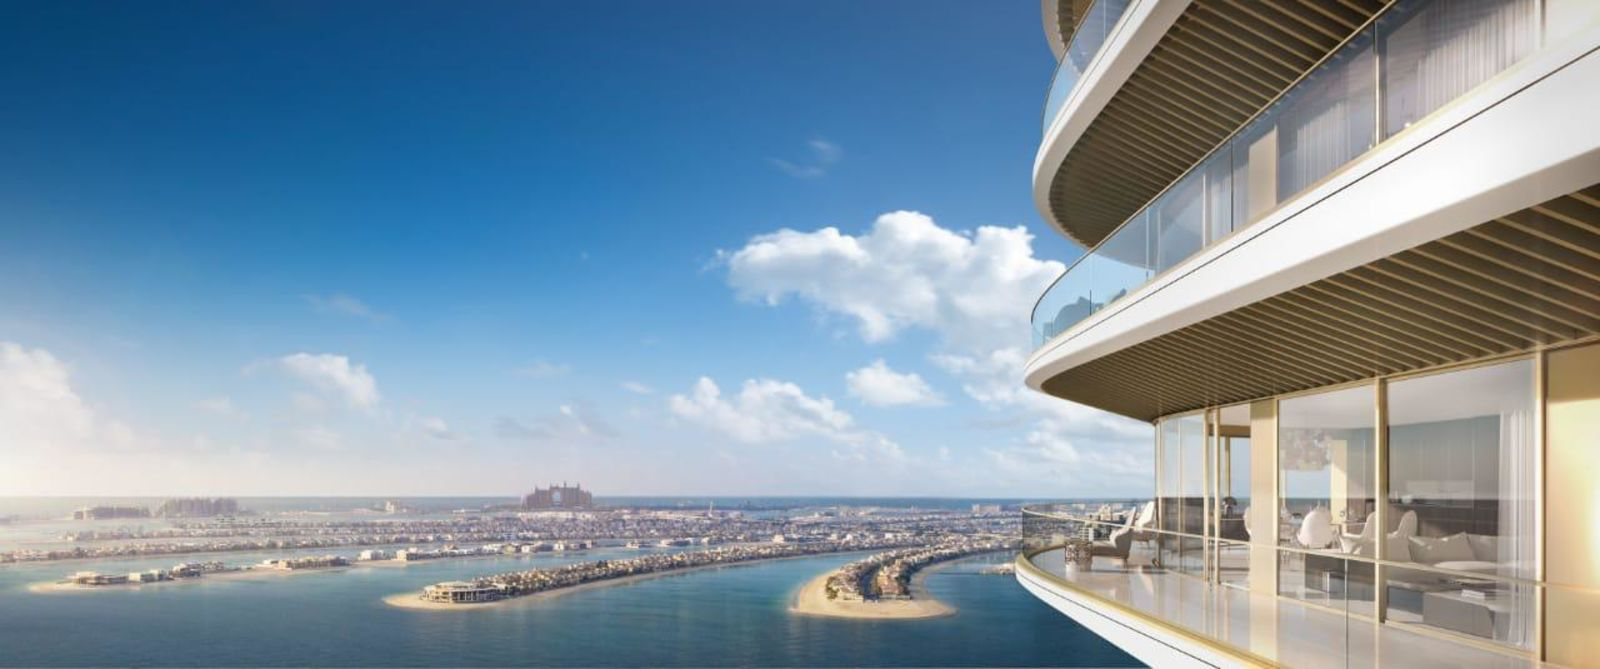 grand bleu dubai harbour emaar beachfront